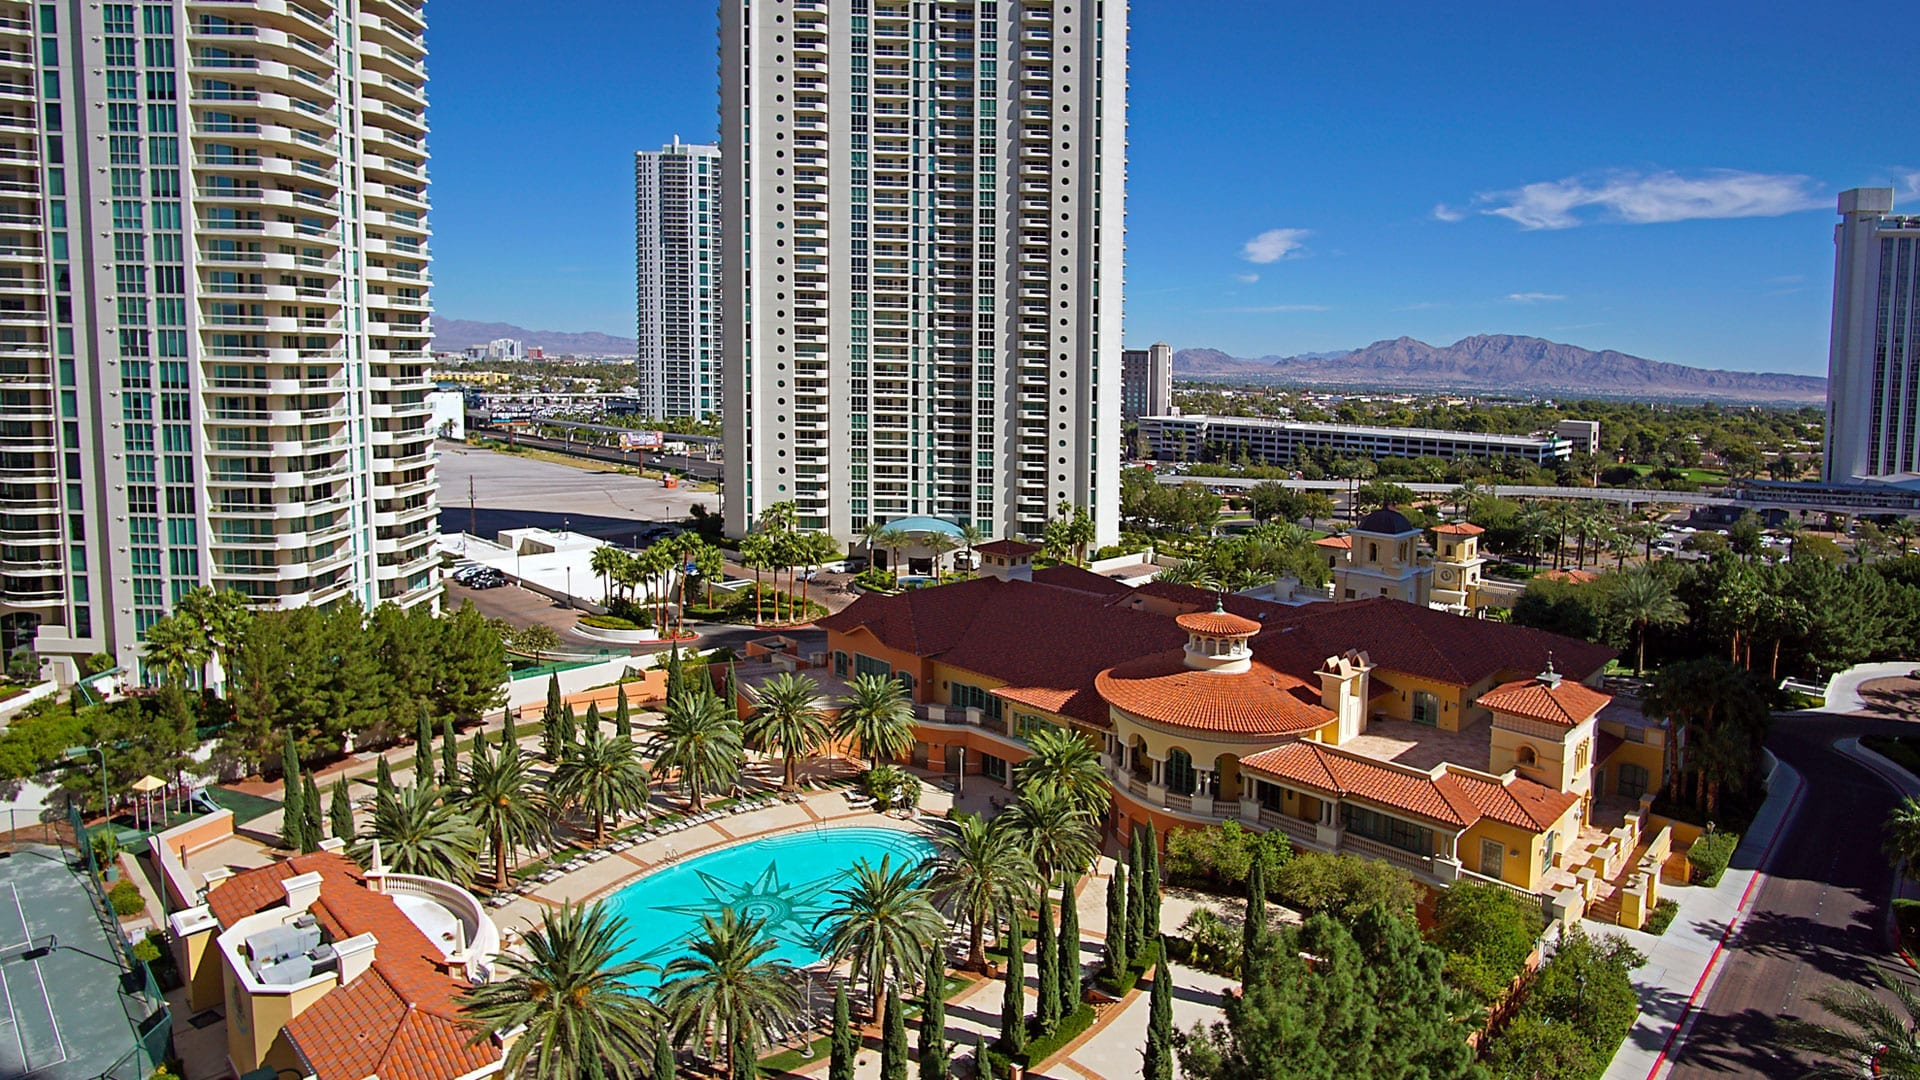 Turnberry Place Las Vegas Luxury Residences - Swedroe Architecture